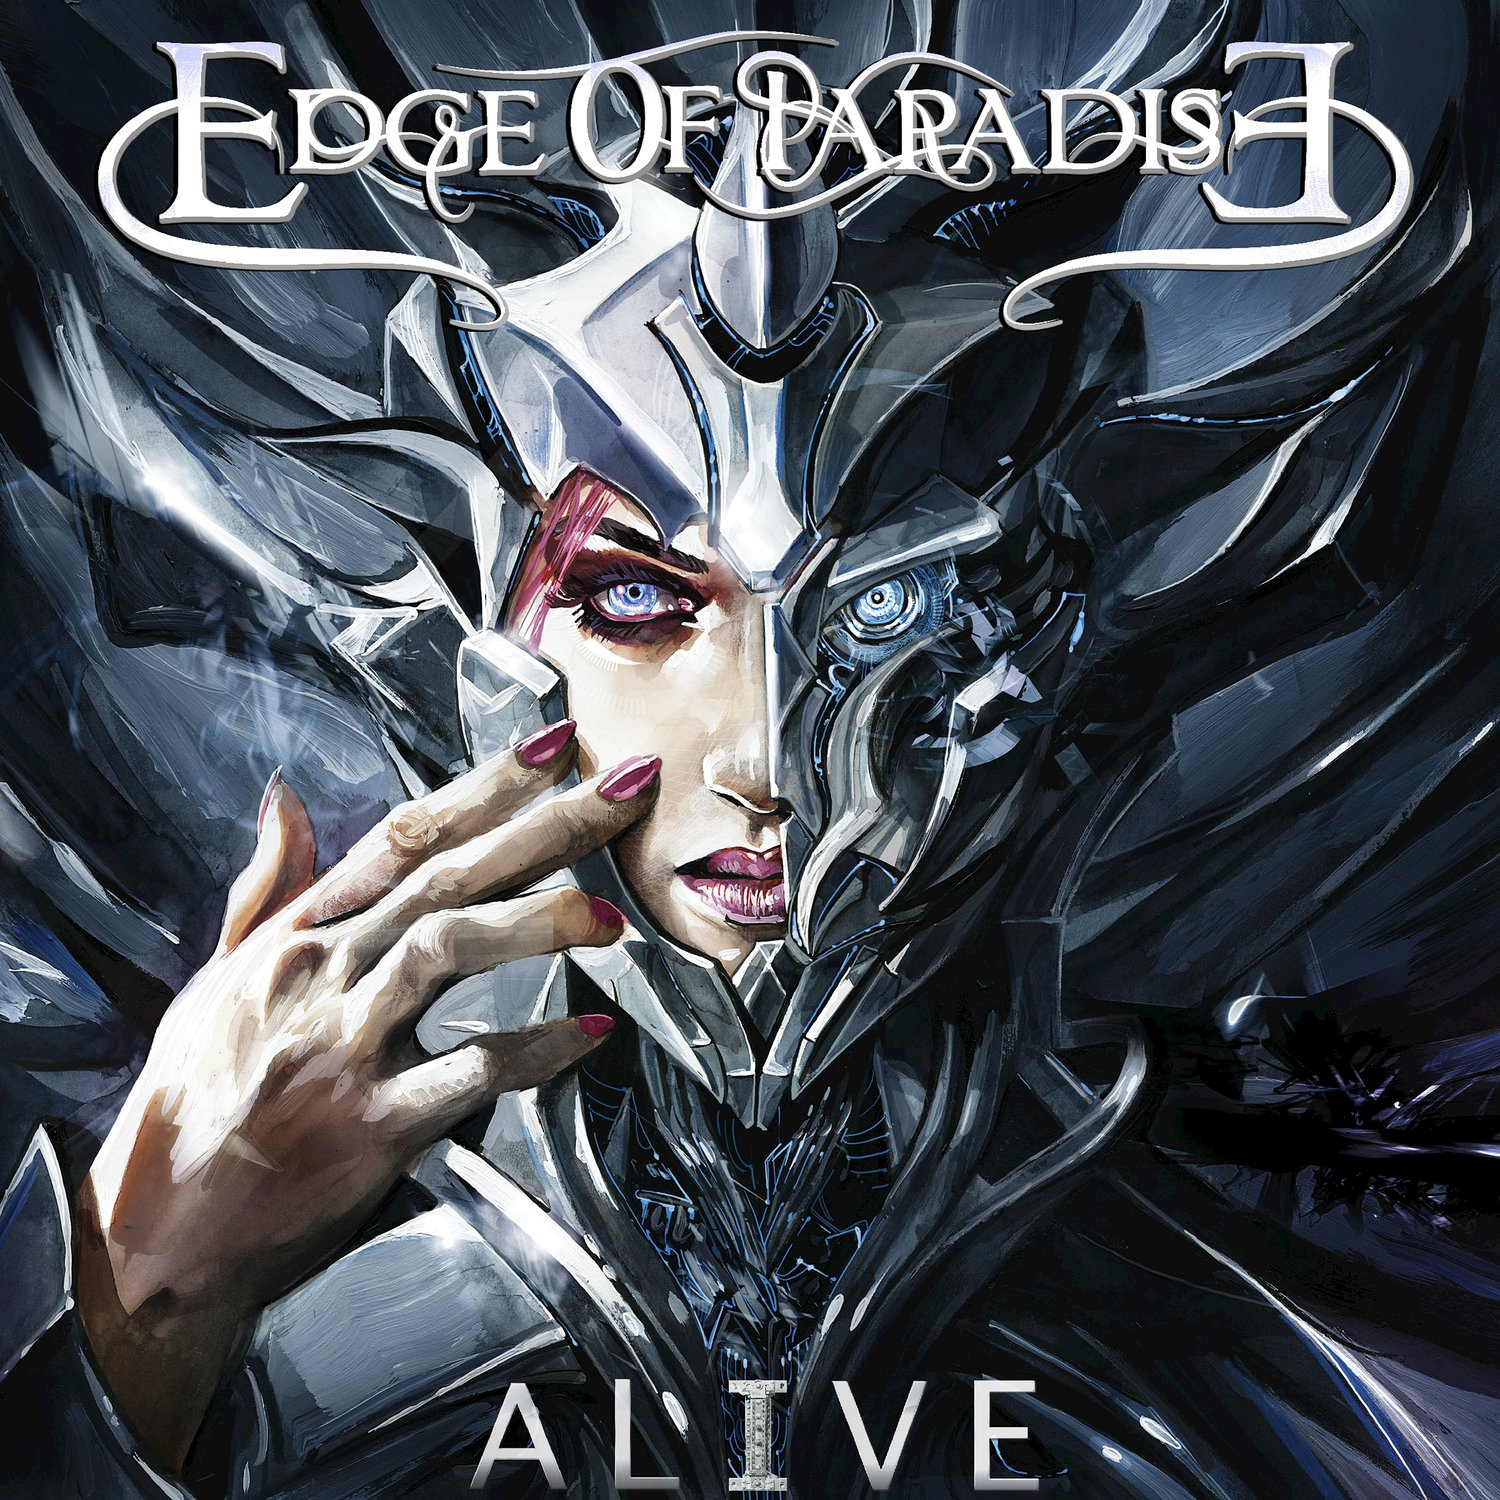 Edge of Paradise ALIVE Best Band in the Universe KAM9 KAM99998